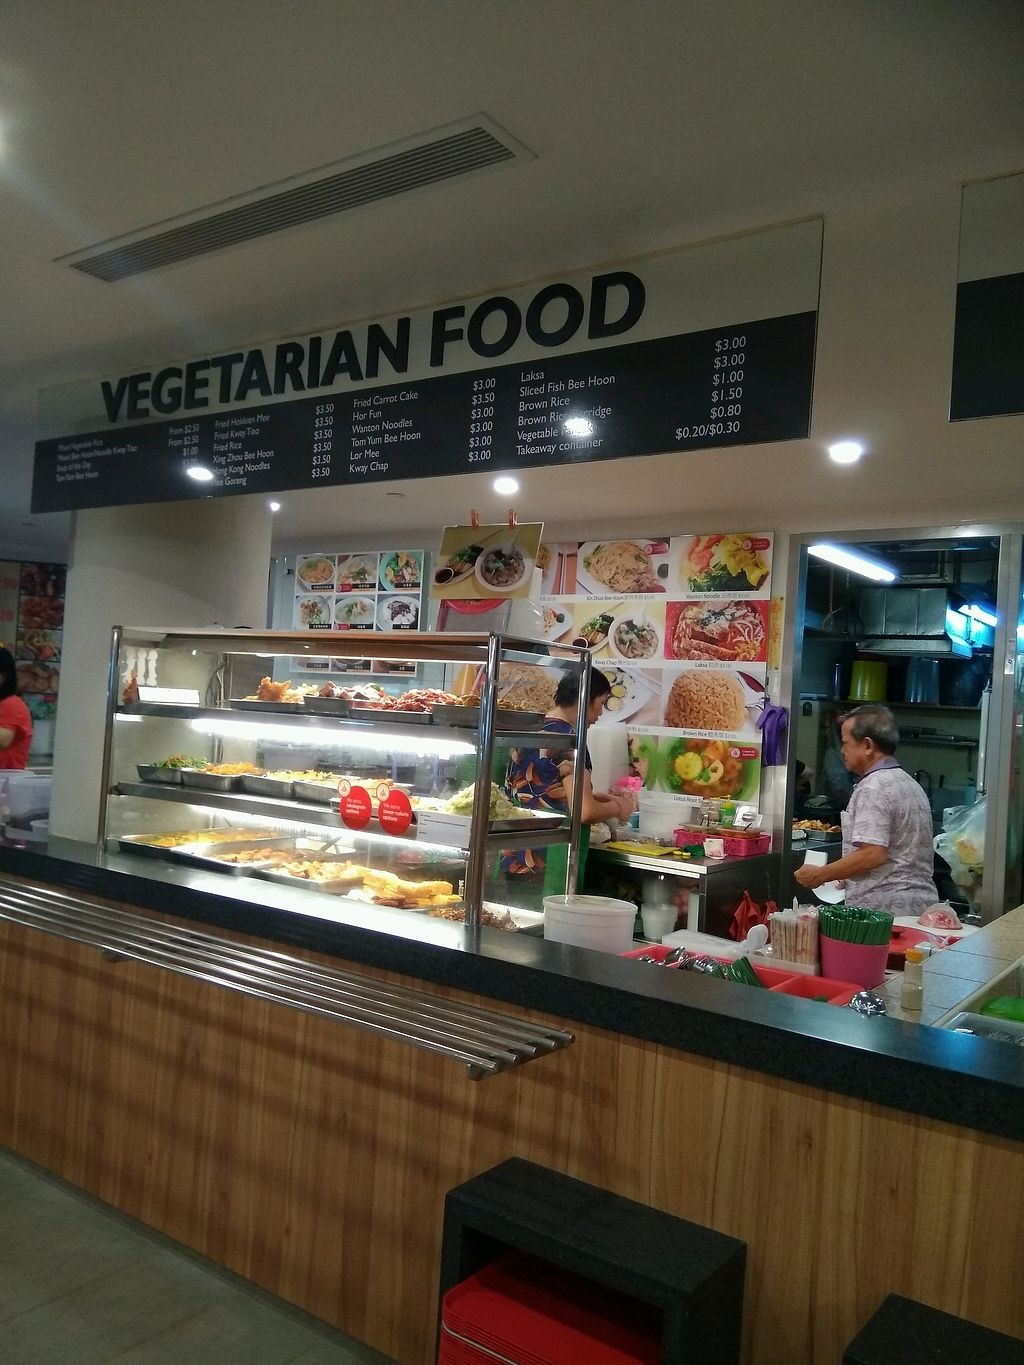 """Photo of Environment Building - Vegetarian Food  by <a href=""""/members/profile/AdelOng"""">AdelOng</a> <br/>Stall front view <br/> April 17, 2018  - <a href='/contact/abuse/image/81509/386965'>Report</a>"""